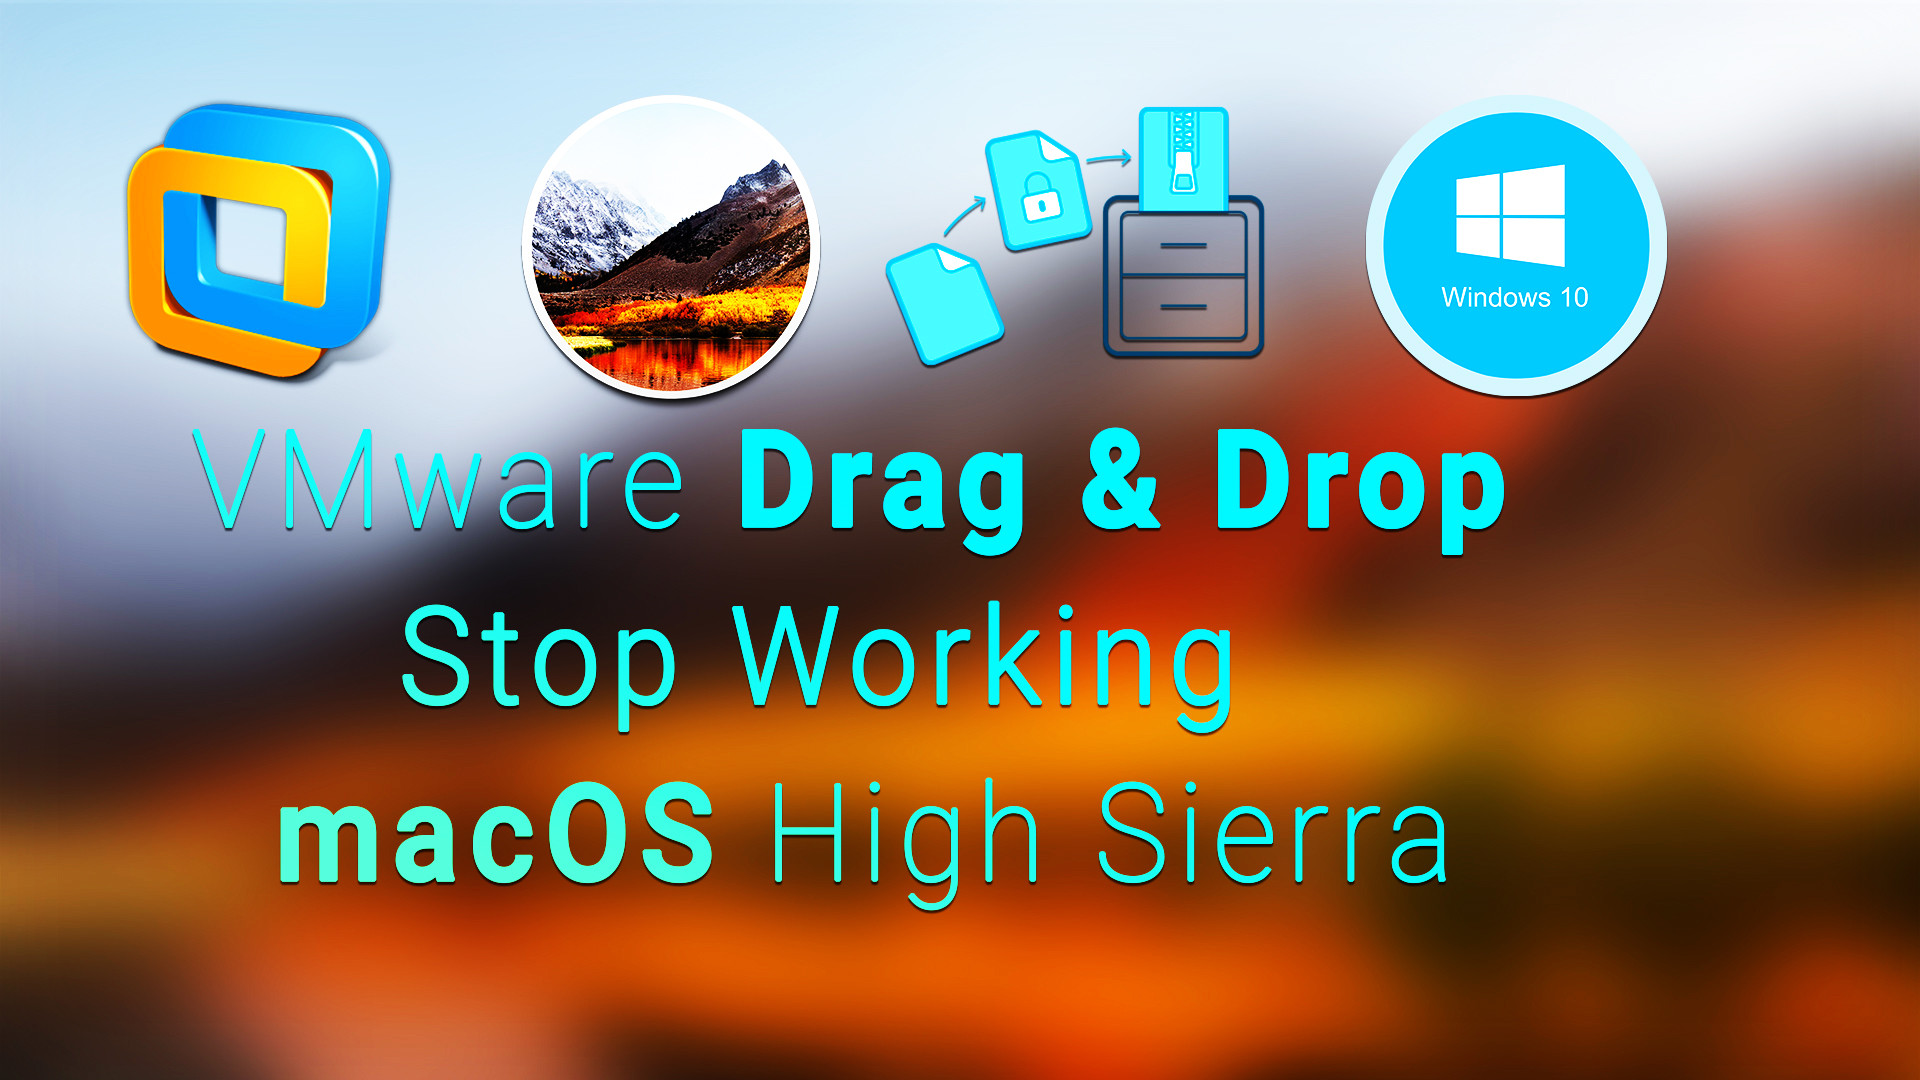 How to Enable Drag & Drop on VMware on macOS High Sierra